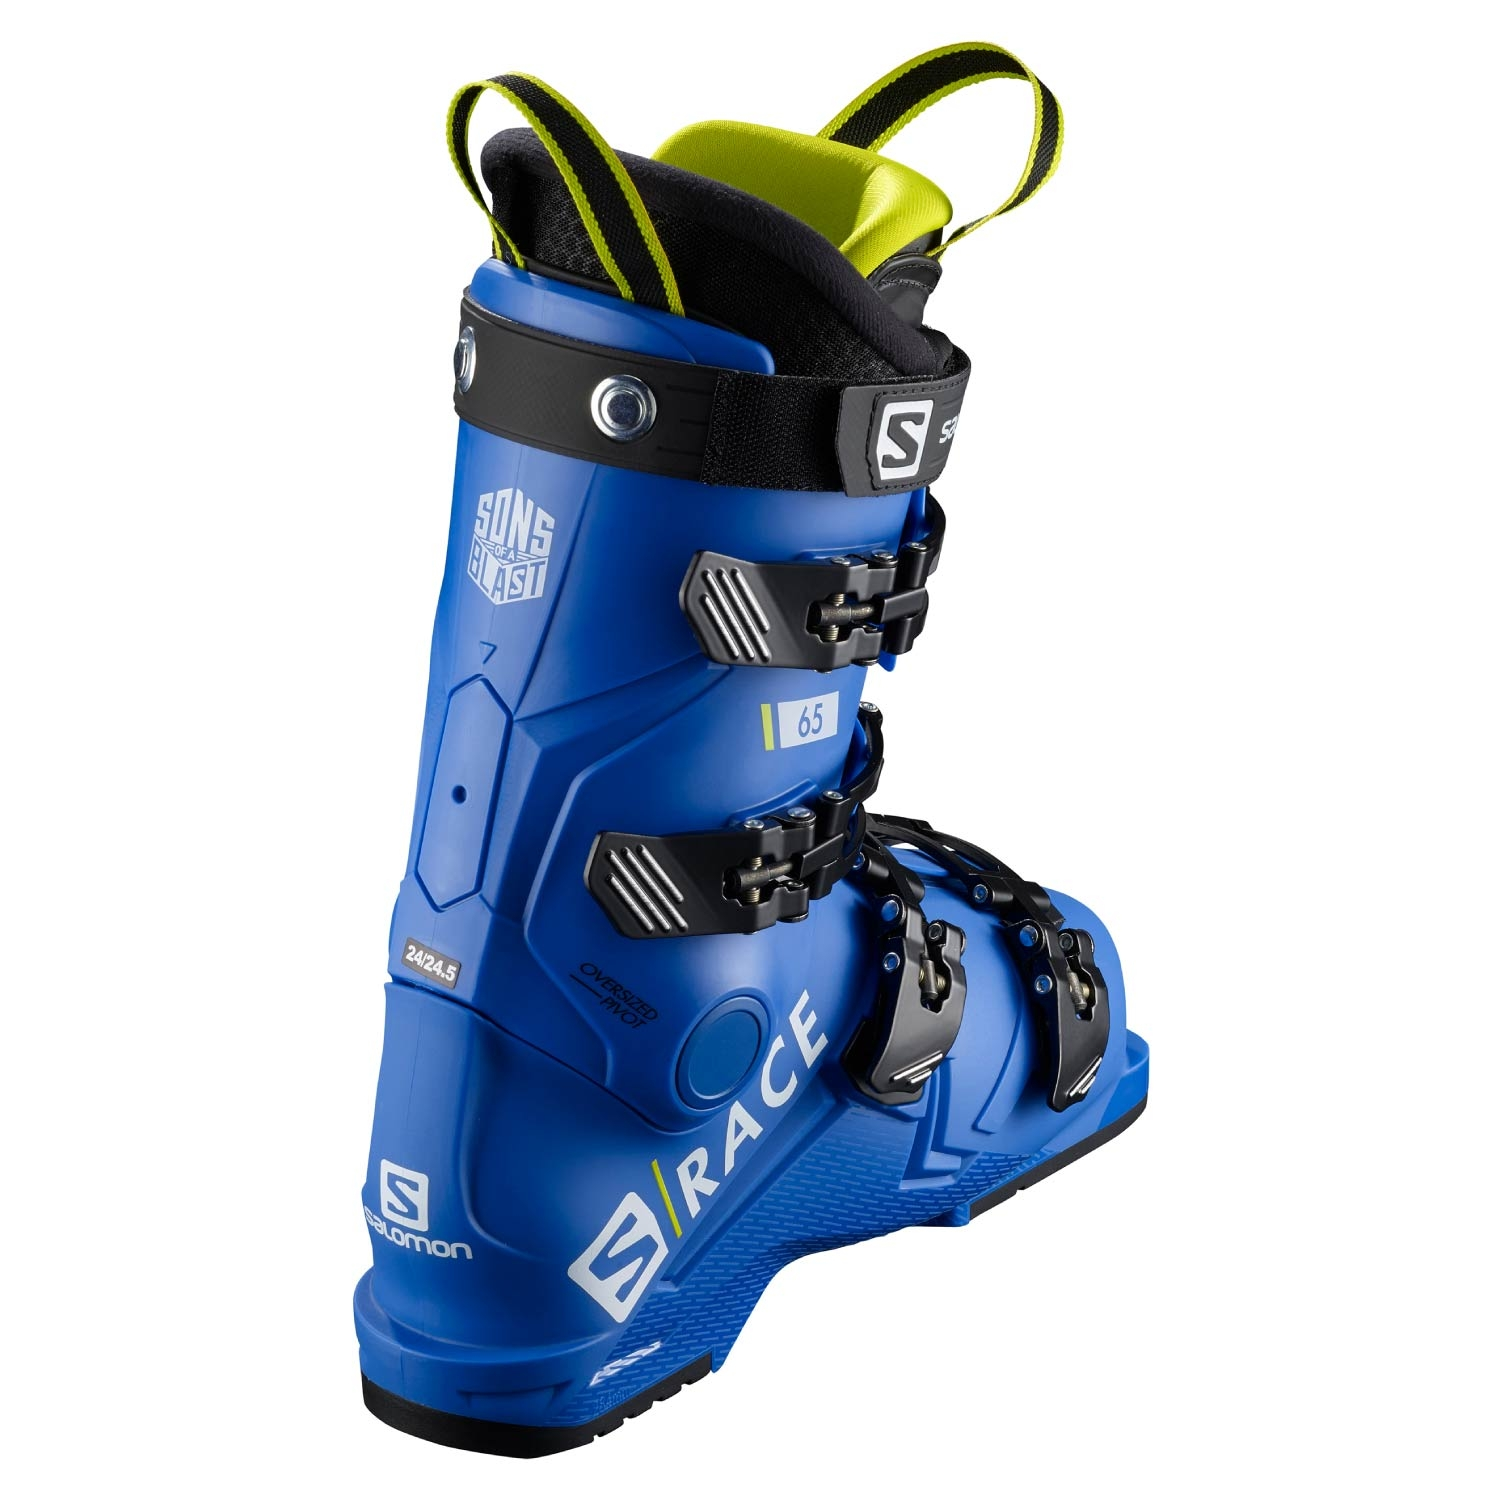 Salomon S Race 65 Ski Boots Race Blue/Acid Green 2021